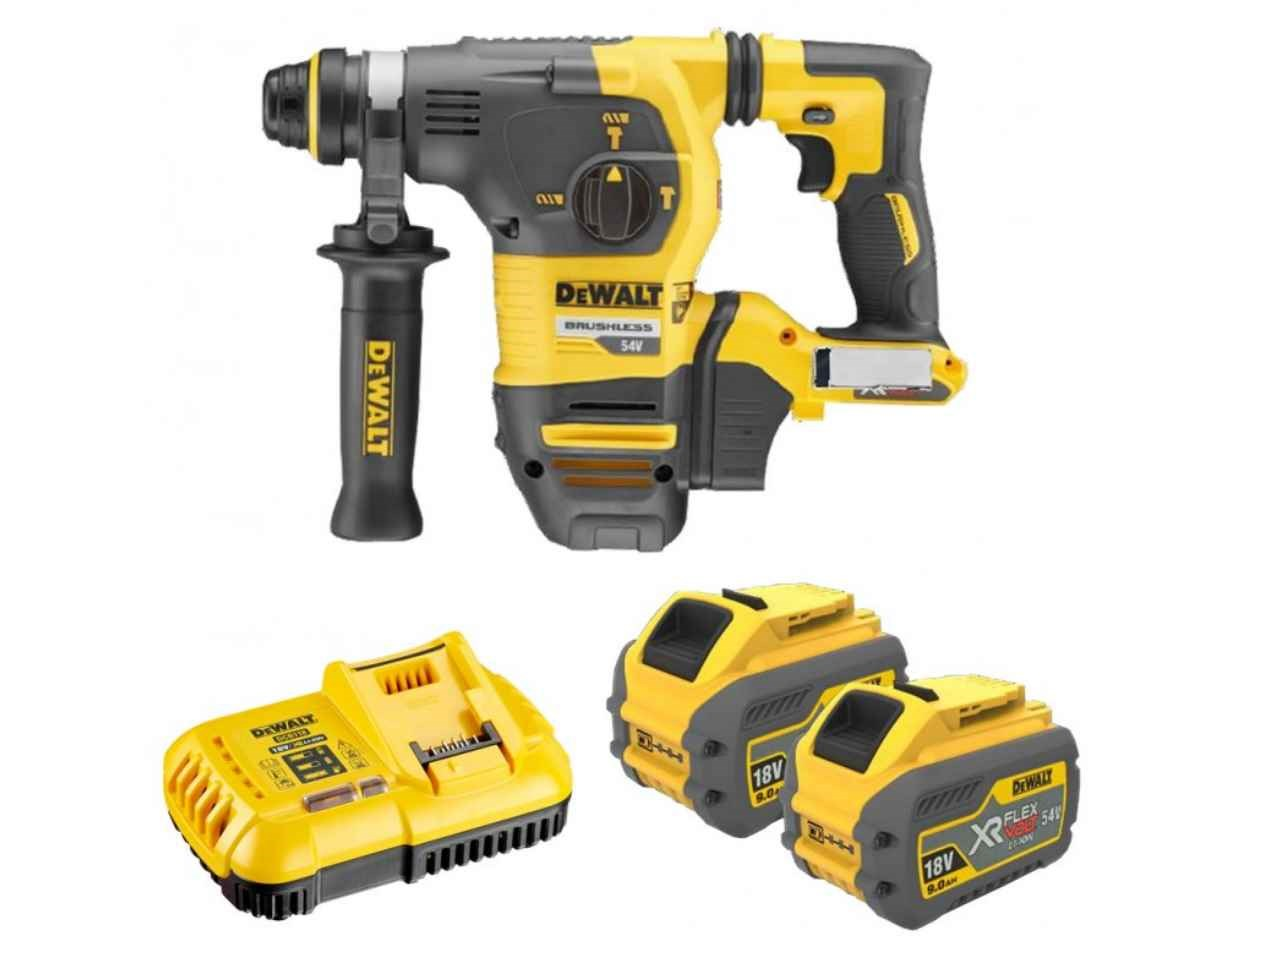 dewalt dch333x2 gb 54v xr flexvolt sds plus hammer. Black Bedroom Furniture Sets. Home Design Ideas